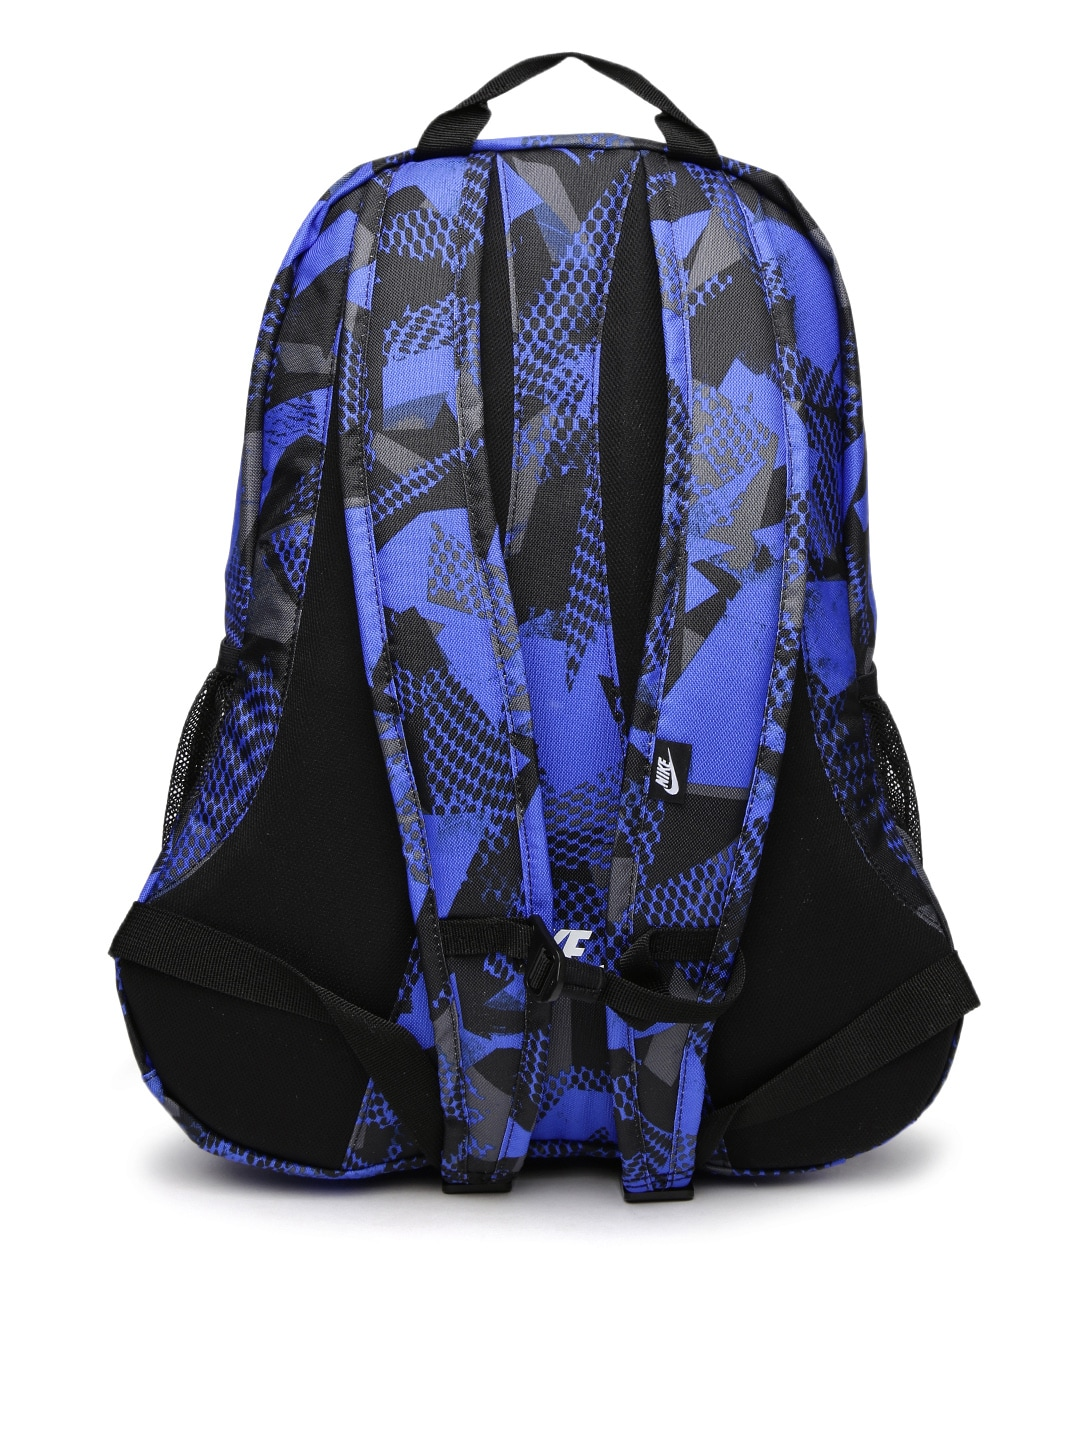 Buy blue and black nike backpack   OFF77% Discounted 201414be6cdc7